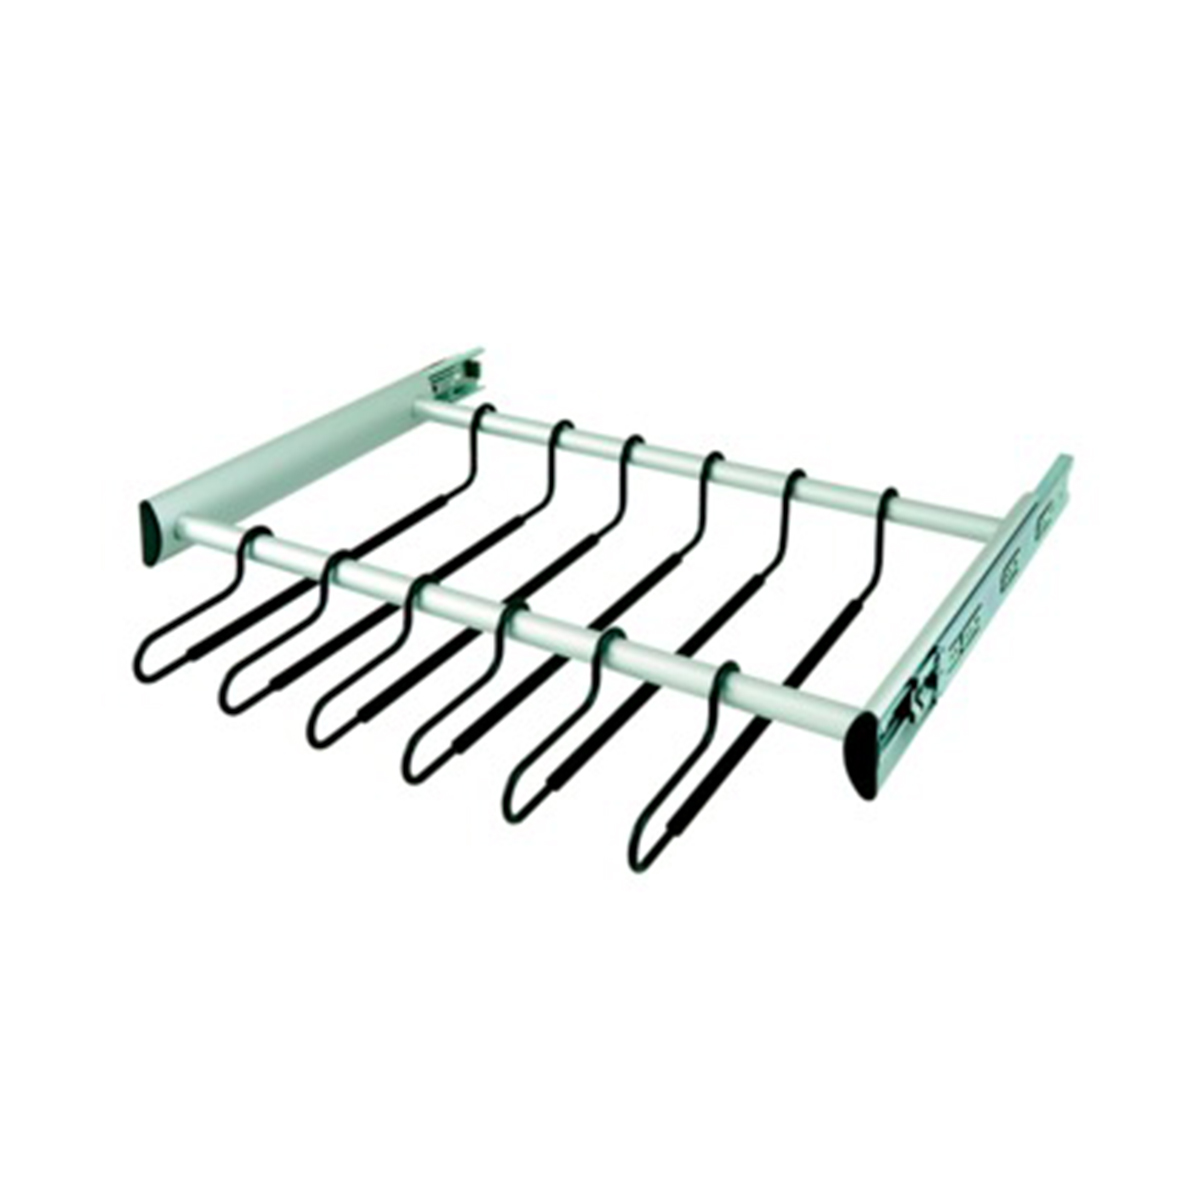 12-hanger-pants-rack-pull-out-synergy-collection-